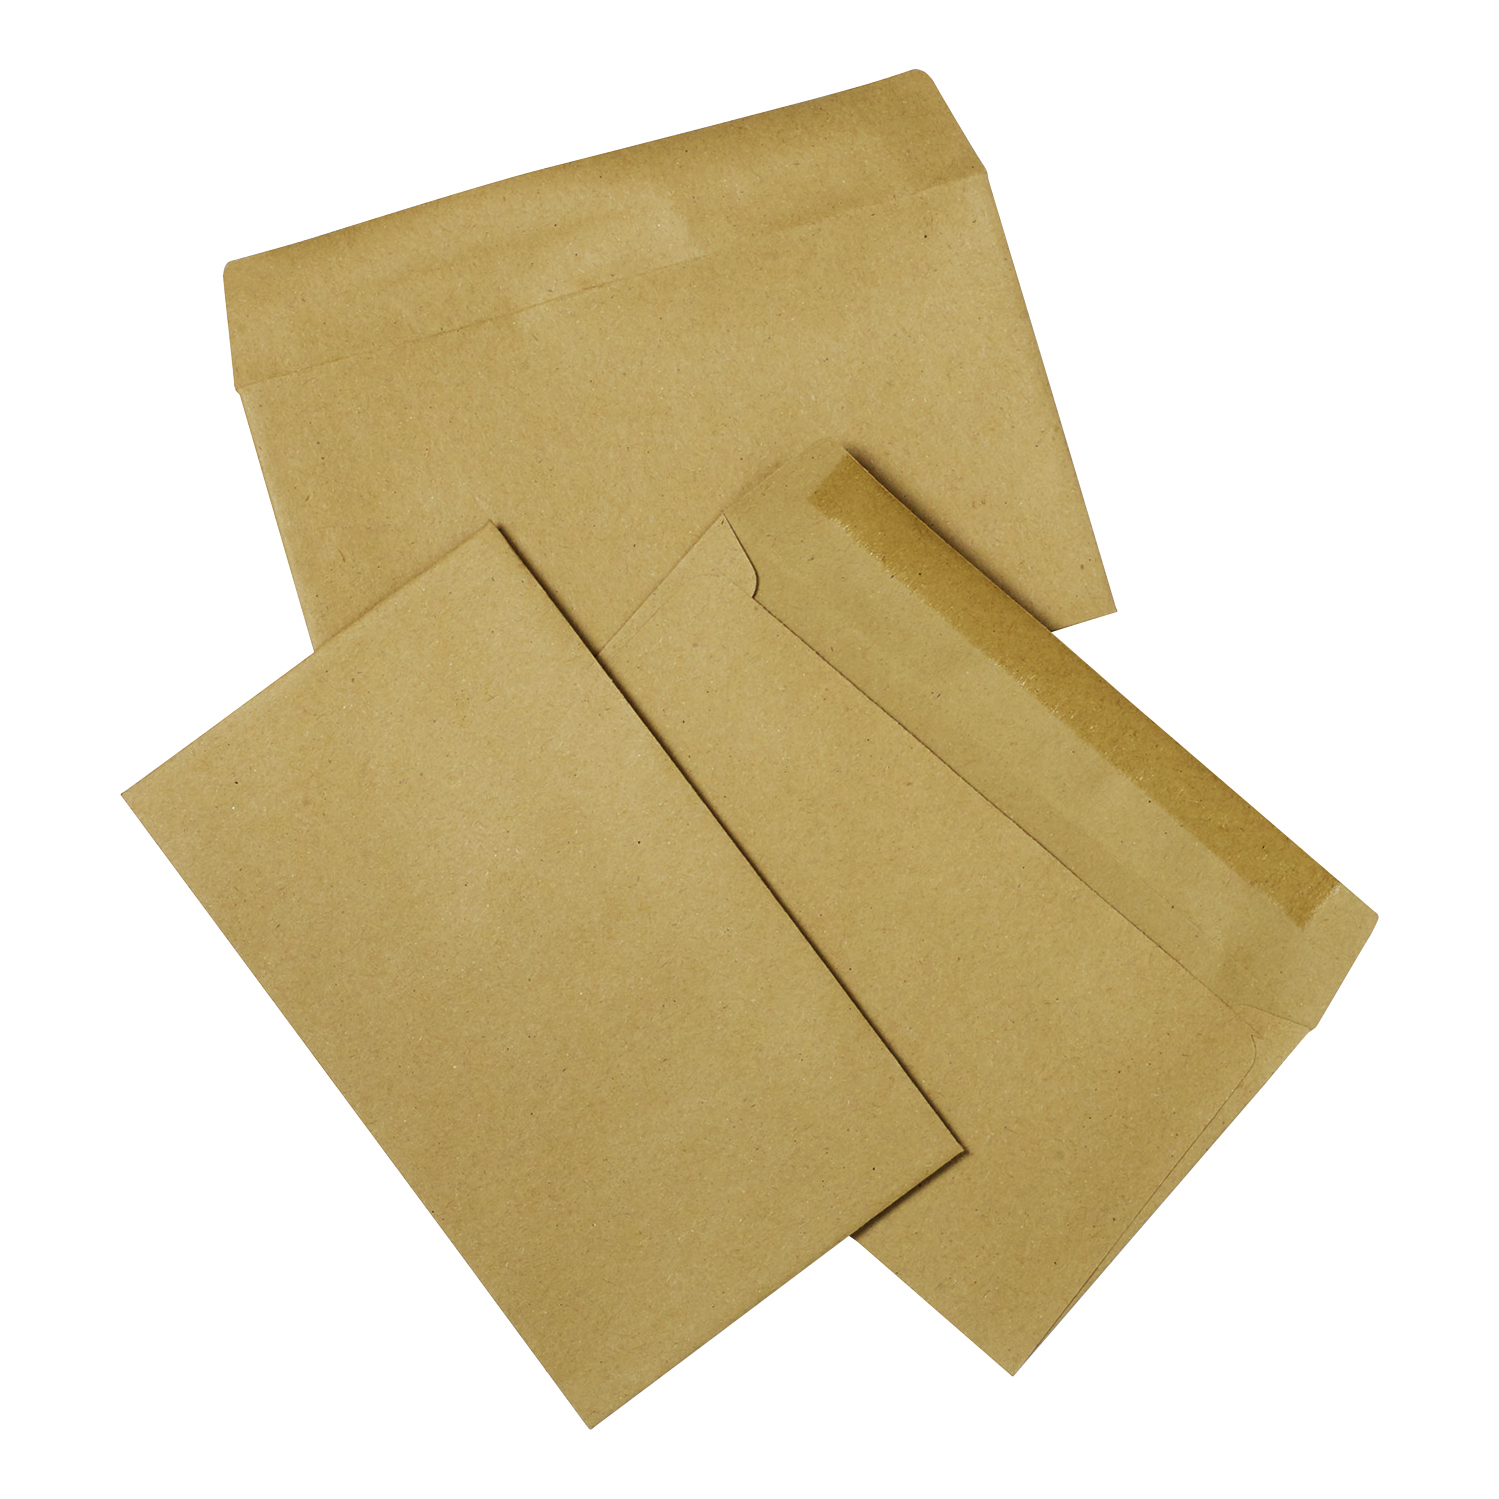 Wage Envelopes 5 Star Office Envelopes FSC Recycled Wallet Gummed Lightweight 75gsm 89x152mm Manilla Pack 2000